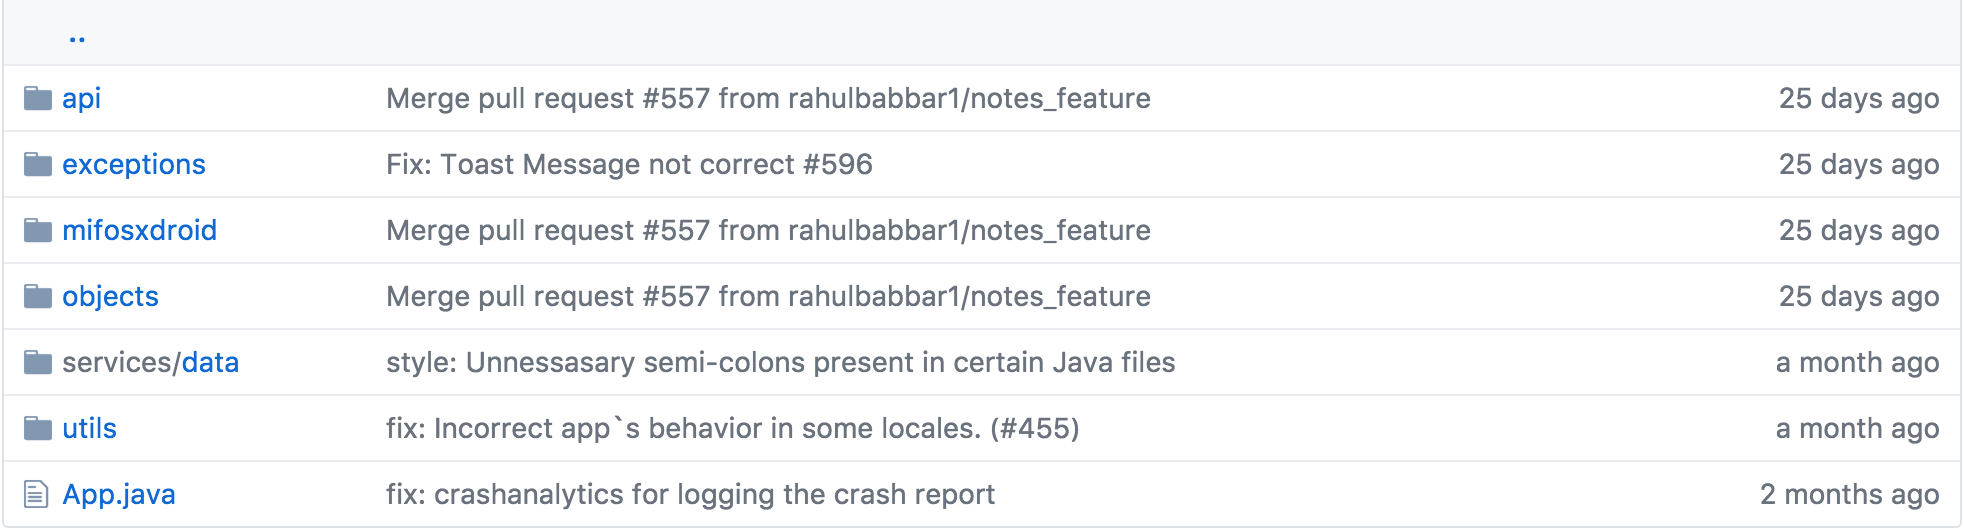 How to navigate through your java projects on Github like a